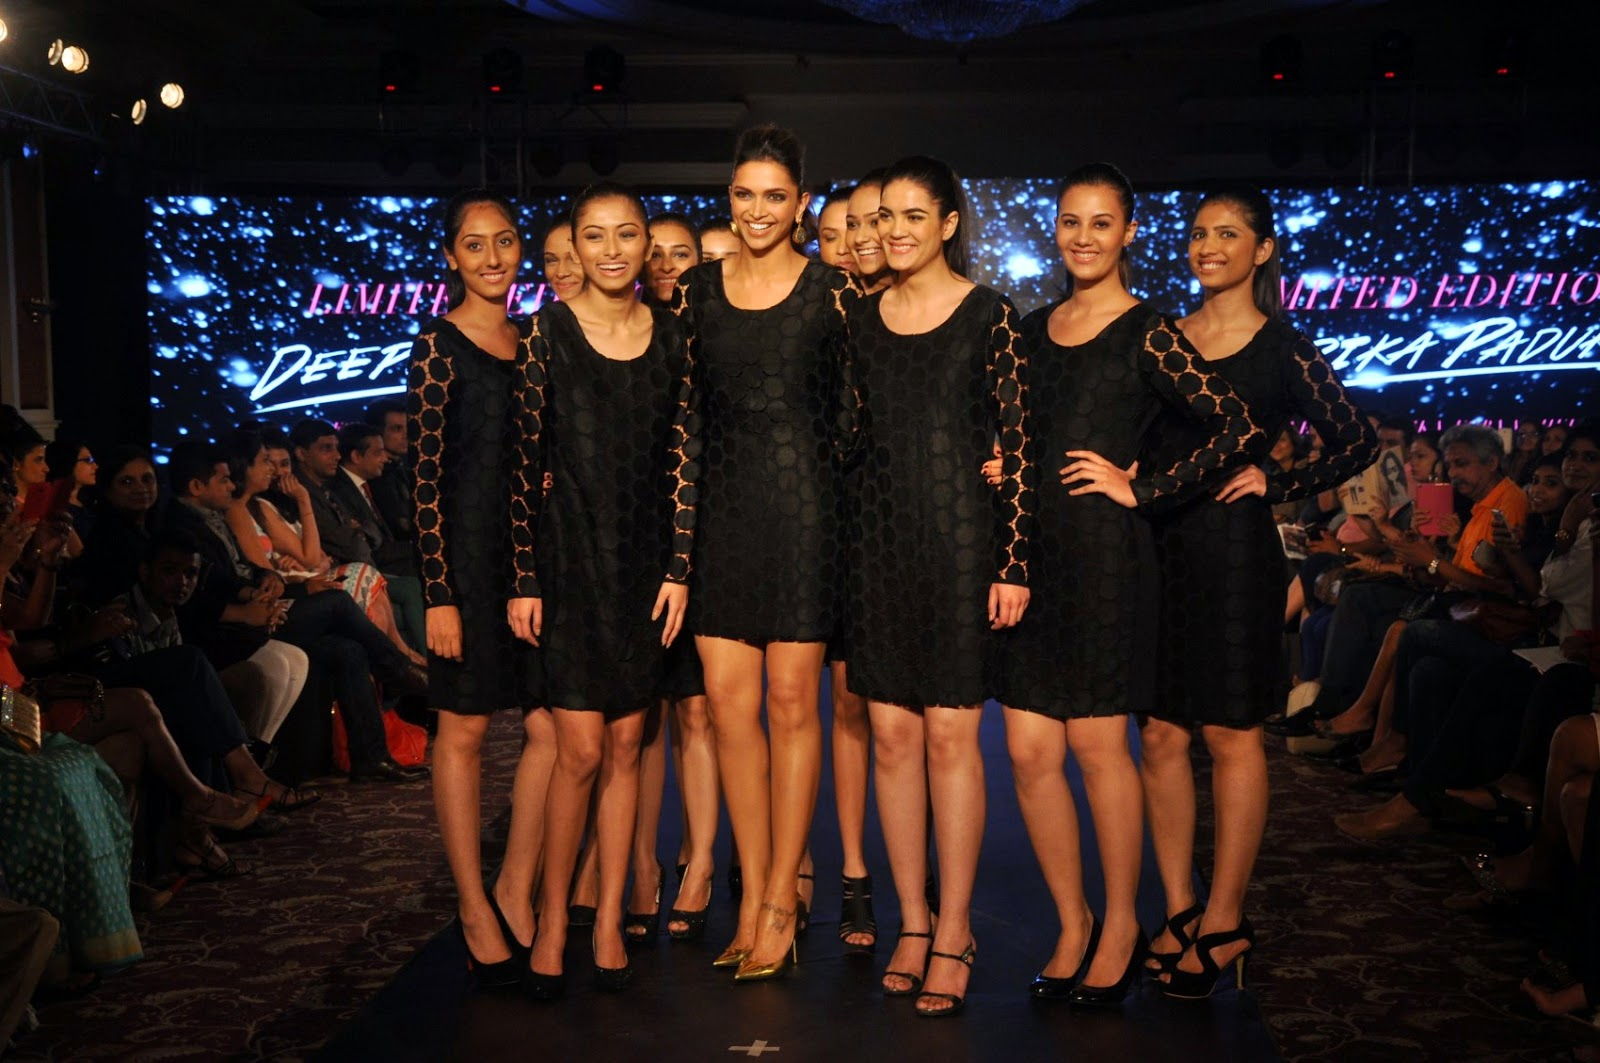 Deepika Padukone Walks at Van Heusen event 'Walk the Ramp with Deepika Show